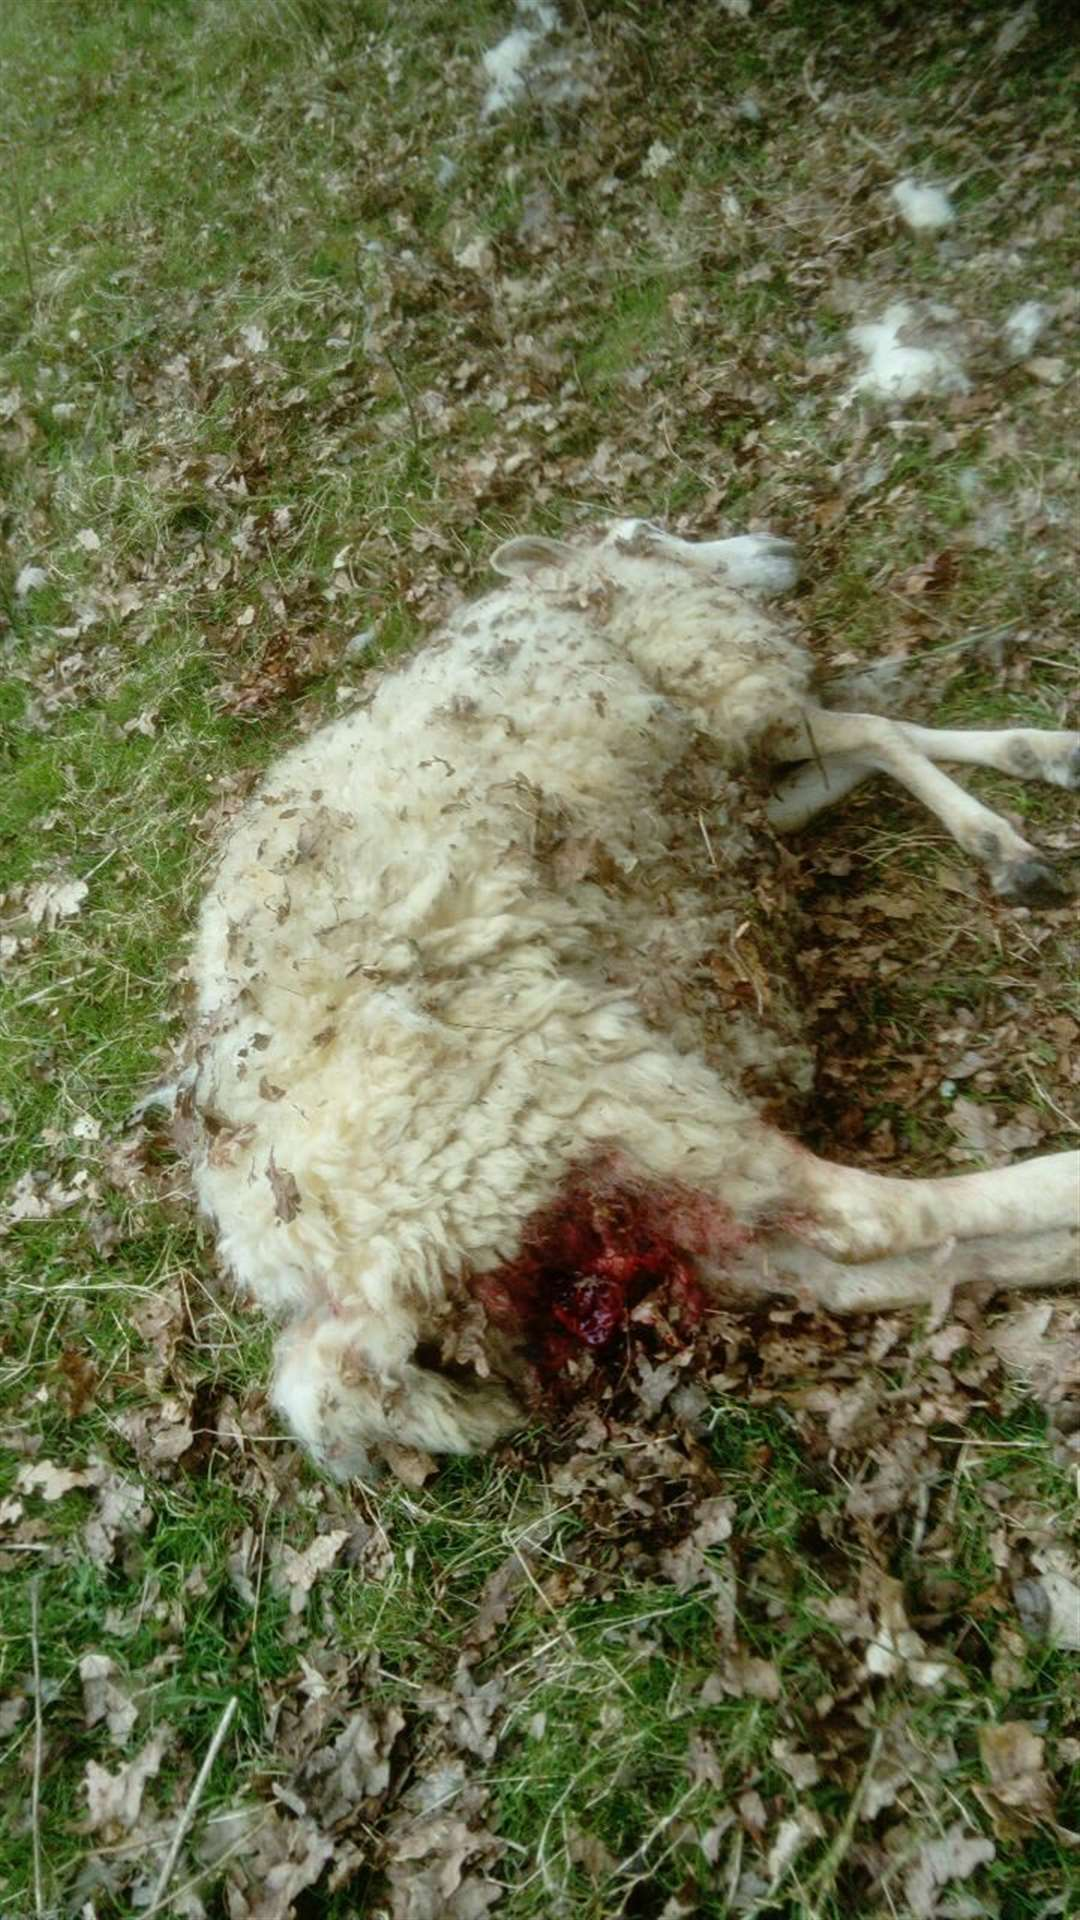 The ewe died from its injuries